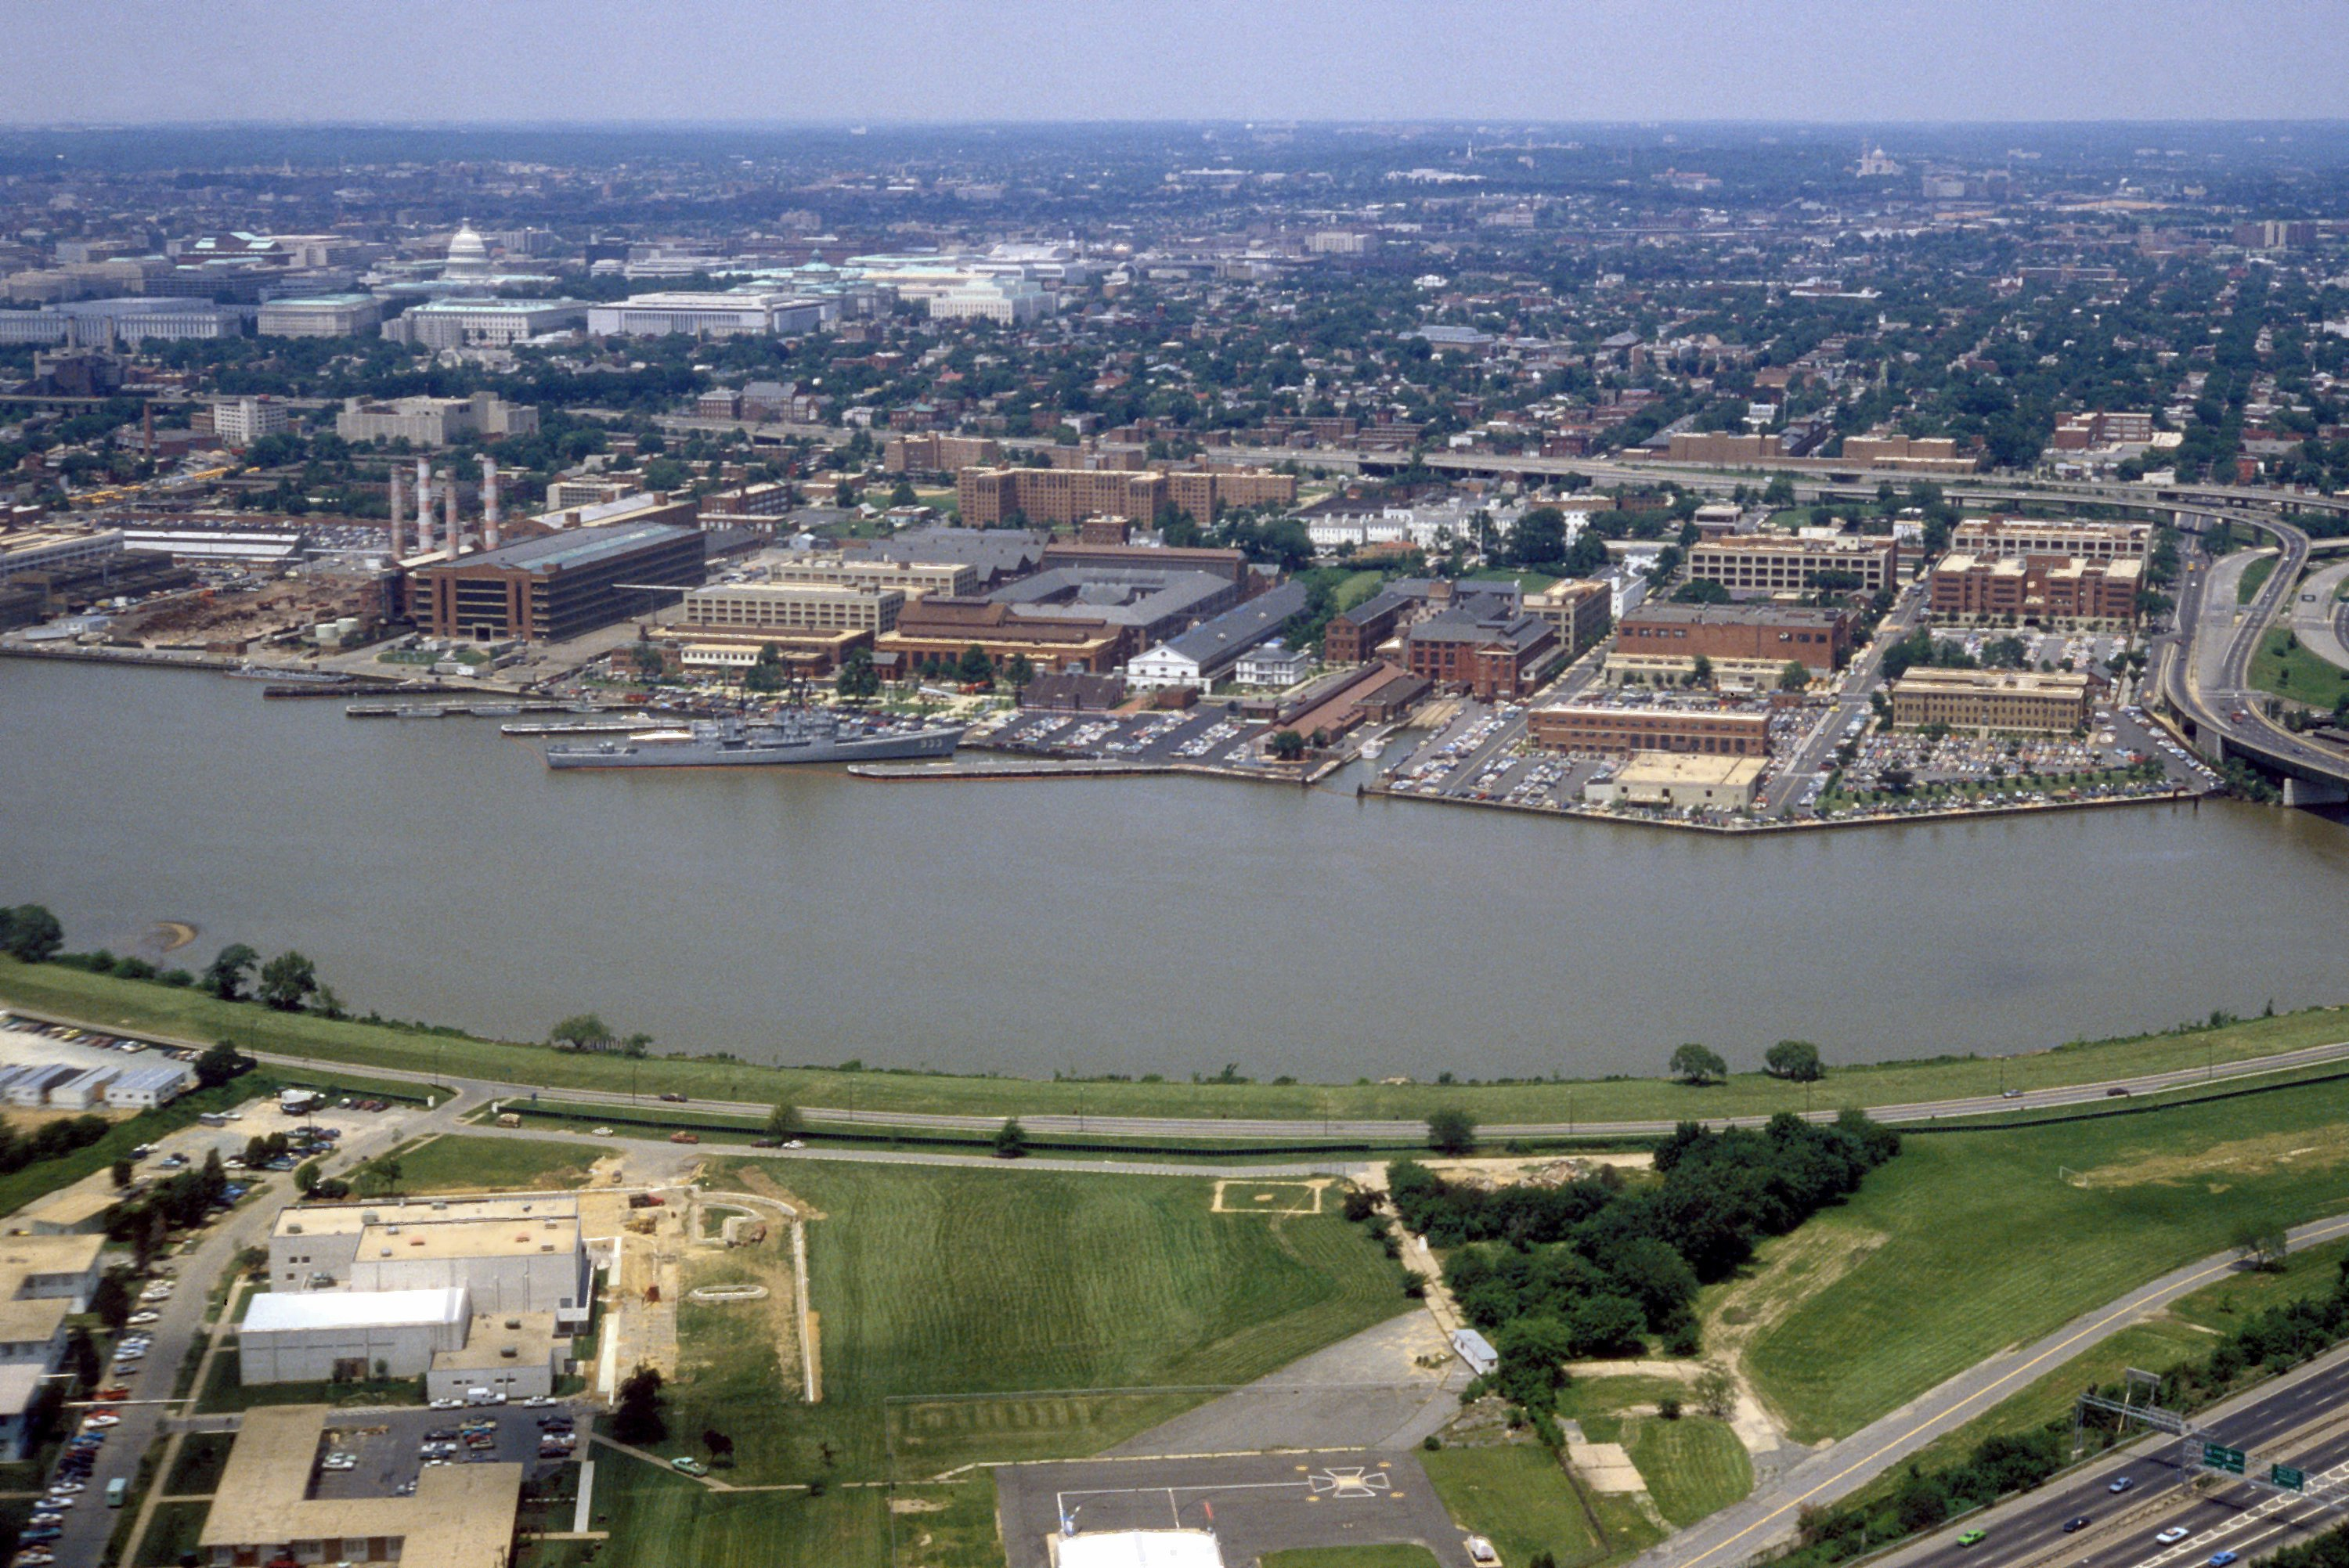 Washington Navy Yard aerial view